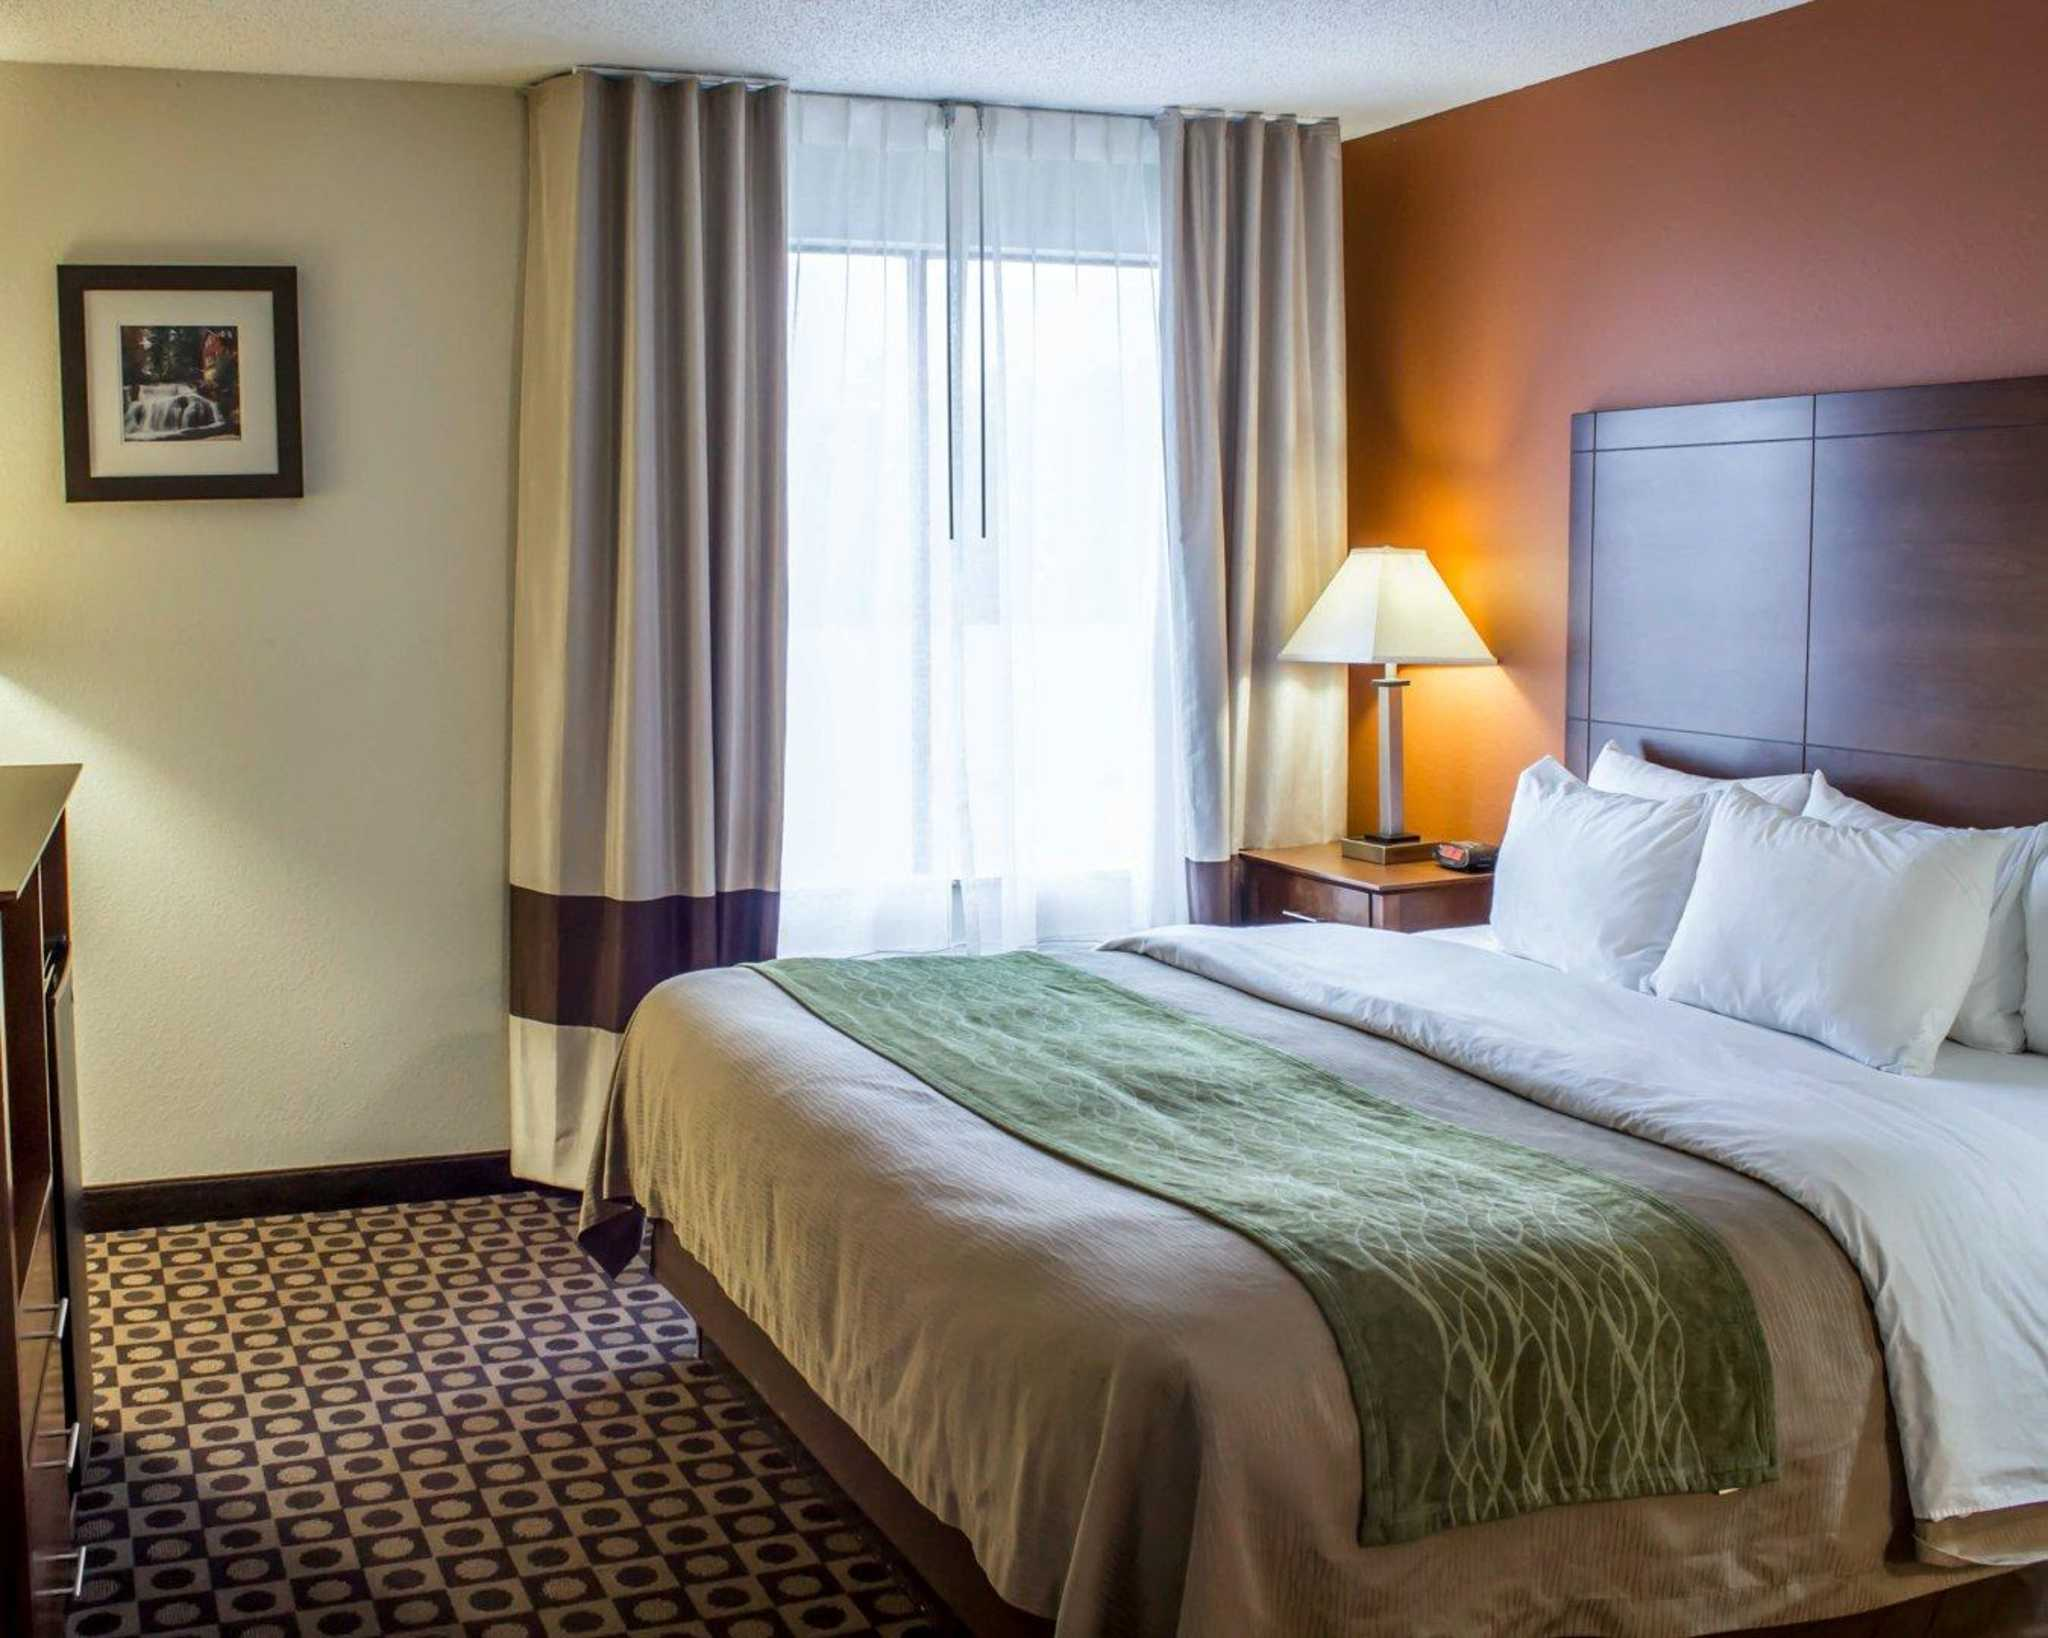 Best Western Inn Whirlpool Rooms